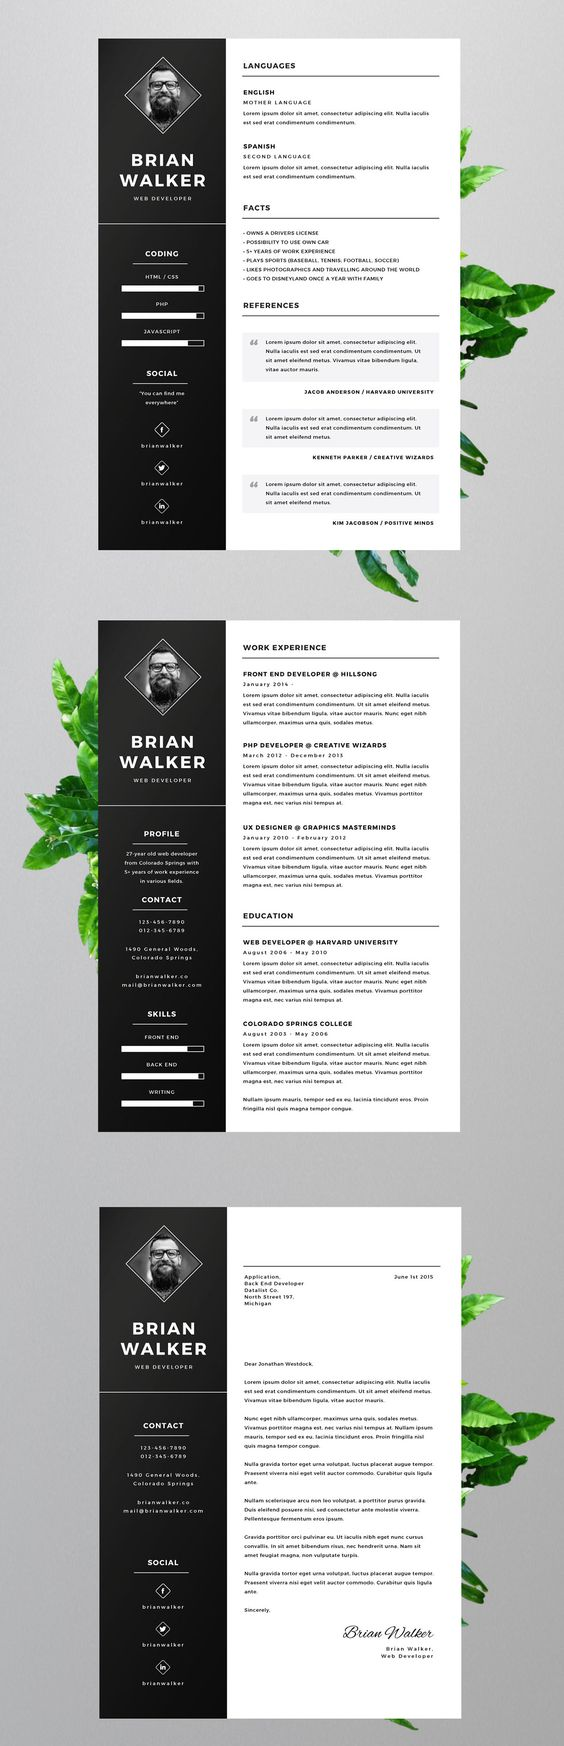 behance net gallery 30805663 resume template for behance net gallery 30805663